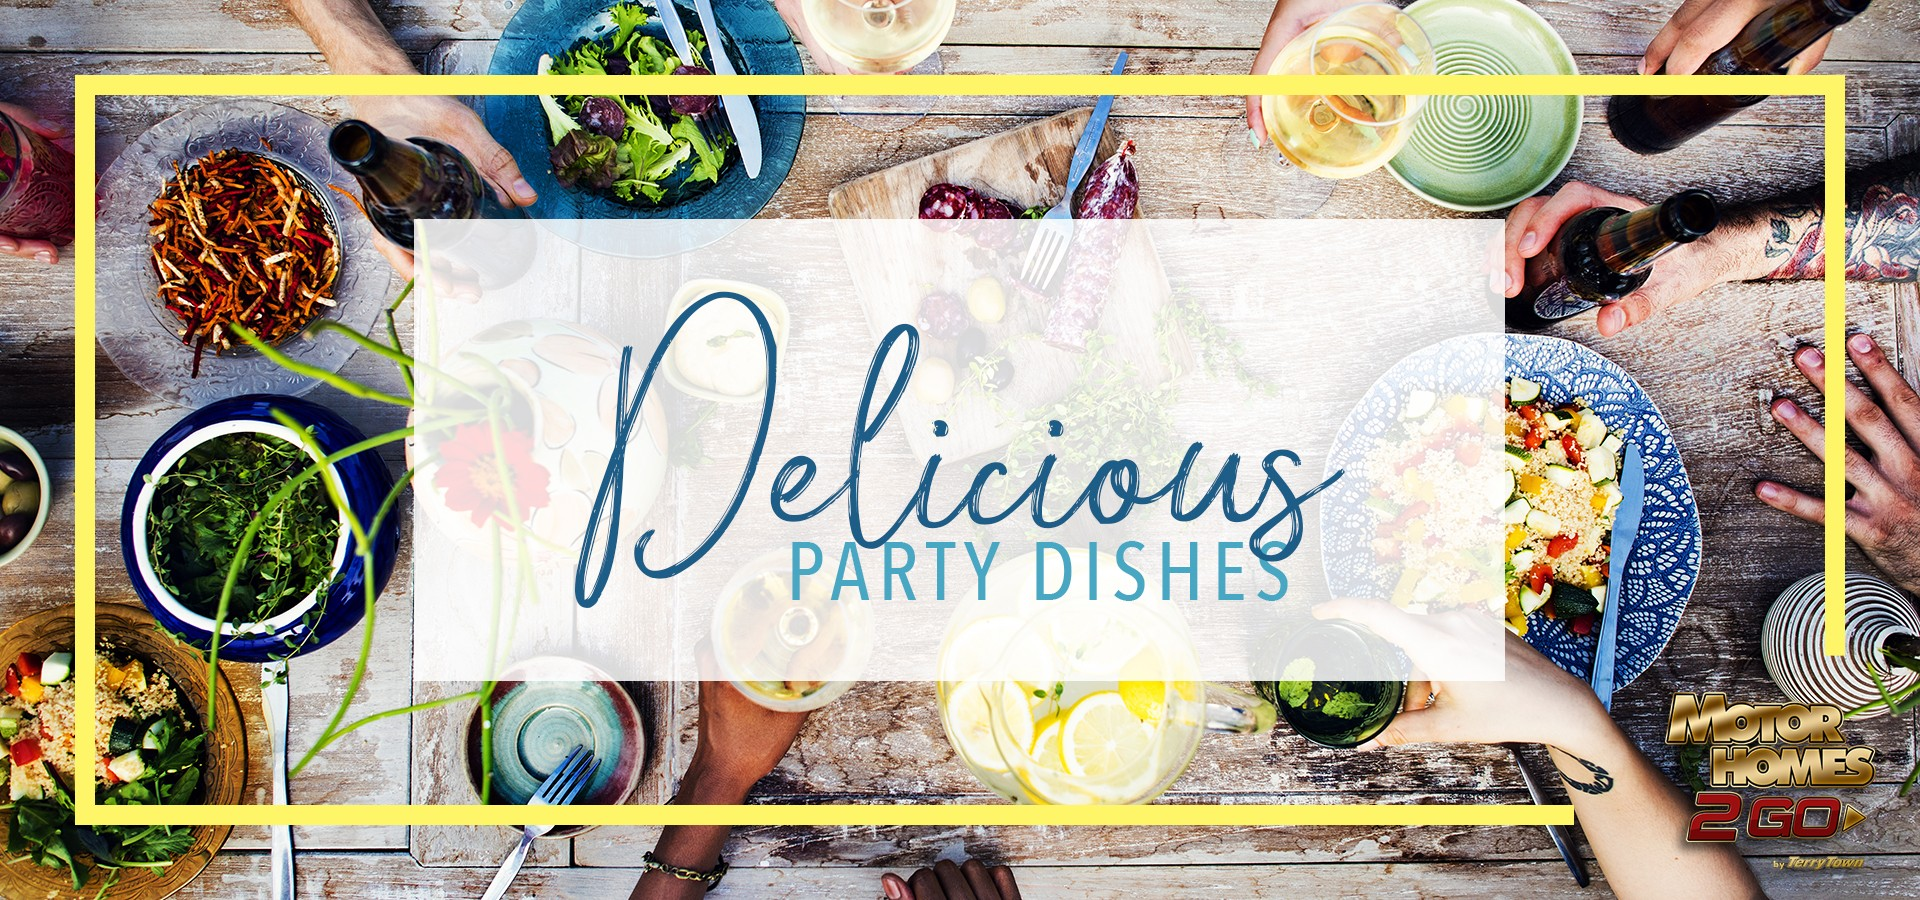 delicious party dishes - potluck dishes to die for